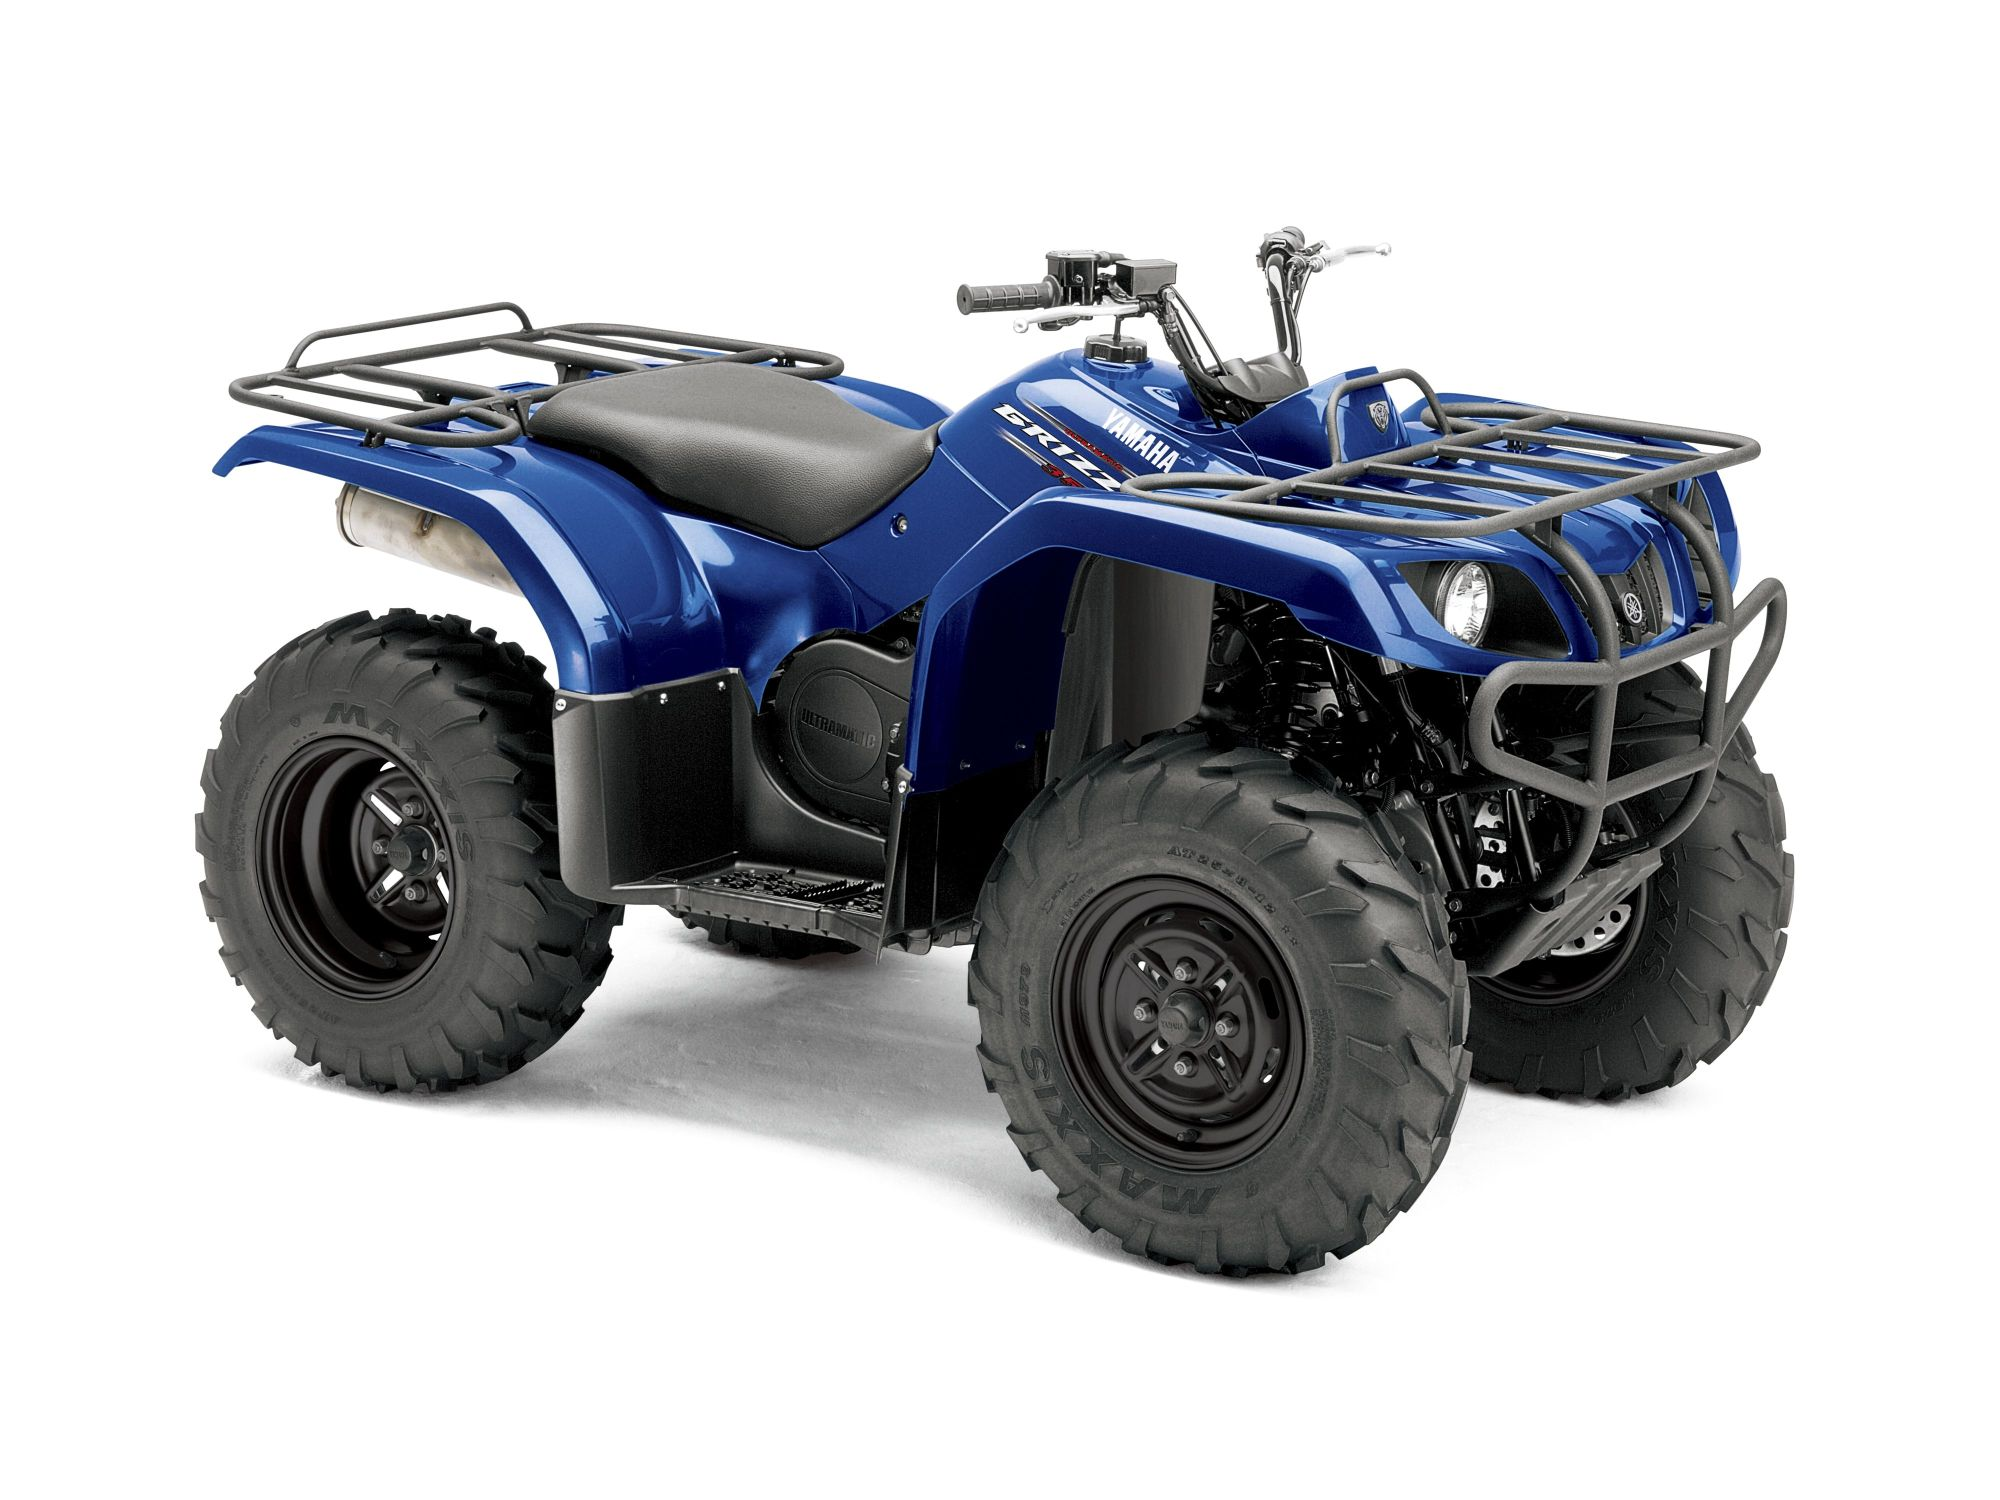 2014 yamaha grizzly 1000 autos post for 2014 yamaha grizzly 450 value